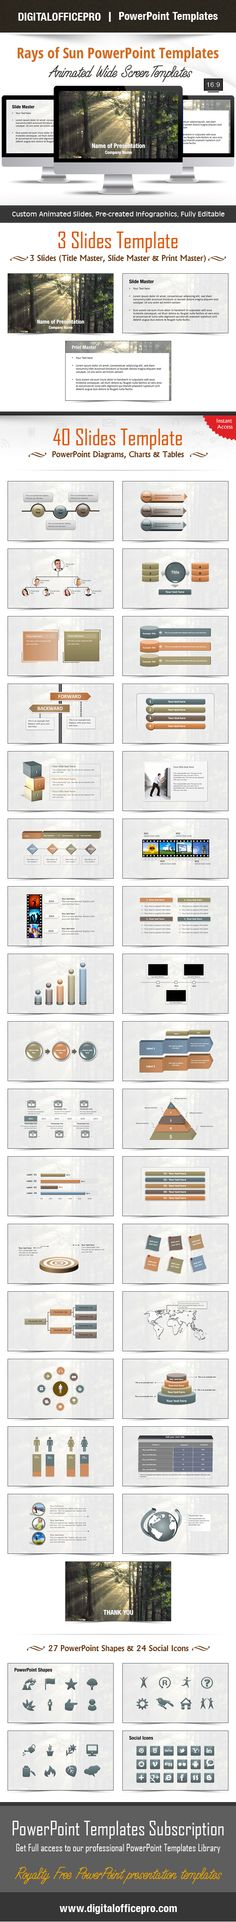 Impress and Engage your audience with Rays of Sun PowerPoint Template and Rays of Sun PowerPoint Backgrounds from DigitalOfficePro. Each template comes with a set of PowerPoint Diagrams, Charts & Shapes and are available for instant download.